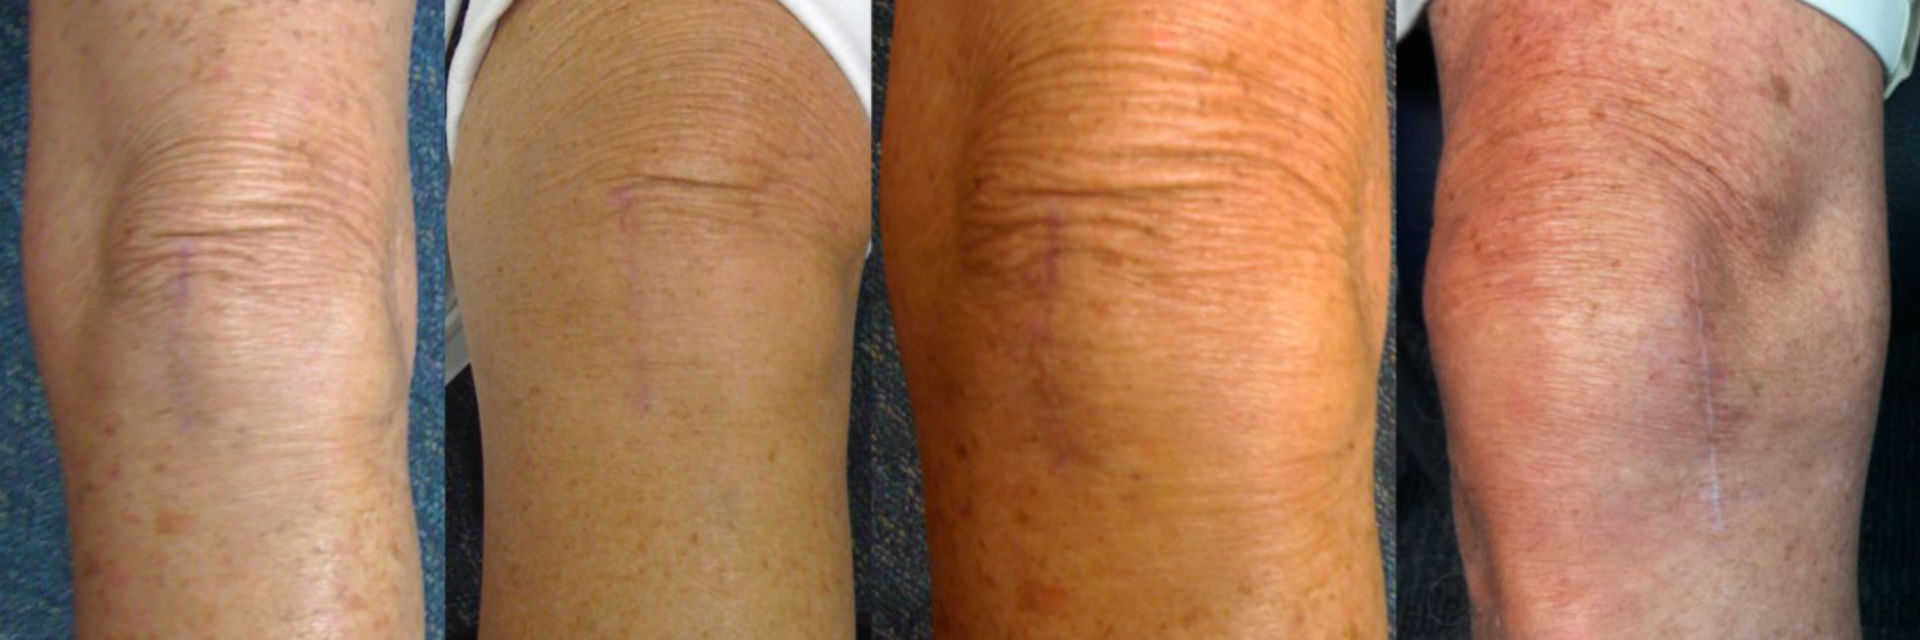 Patients' knees after medial partial knee replacement surgery.